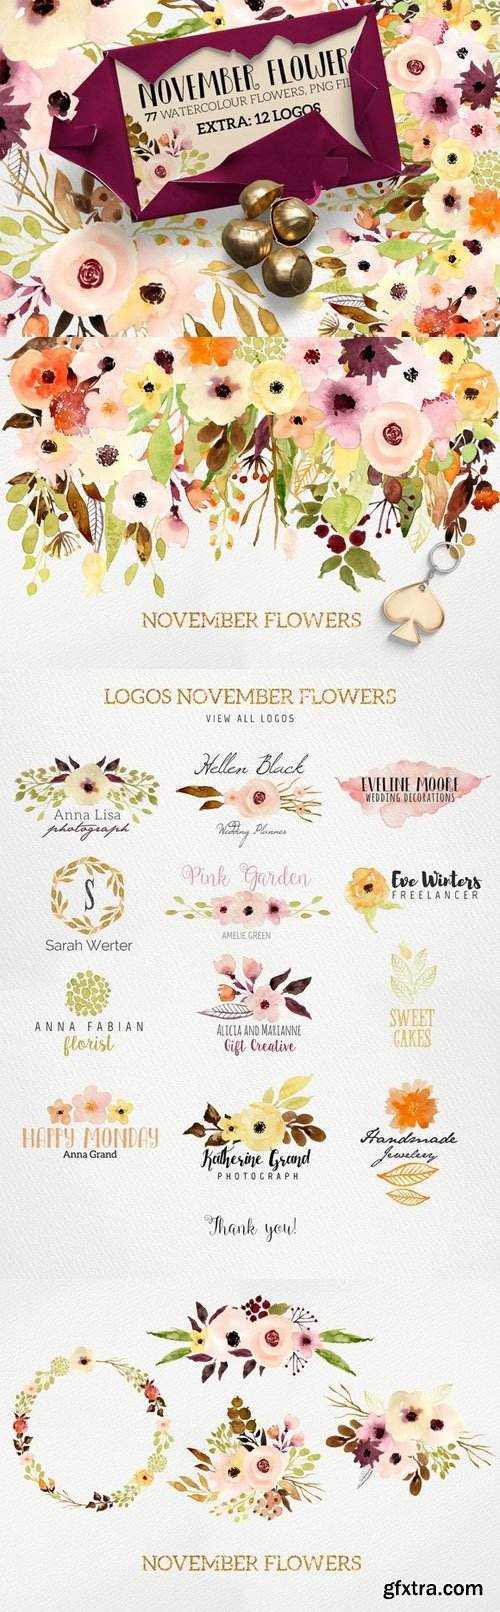 Logos and November Flowers - CM 429313